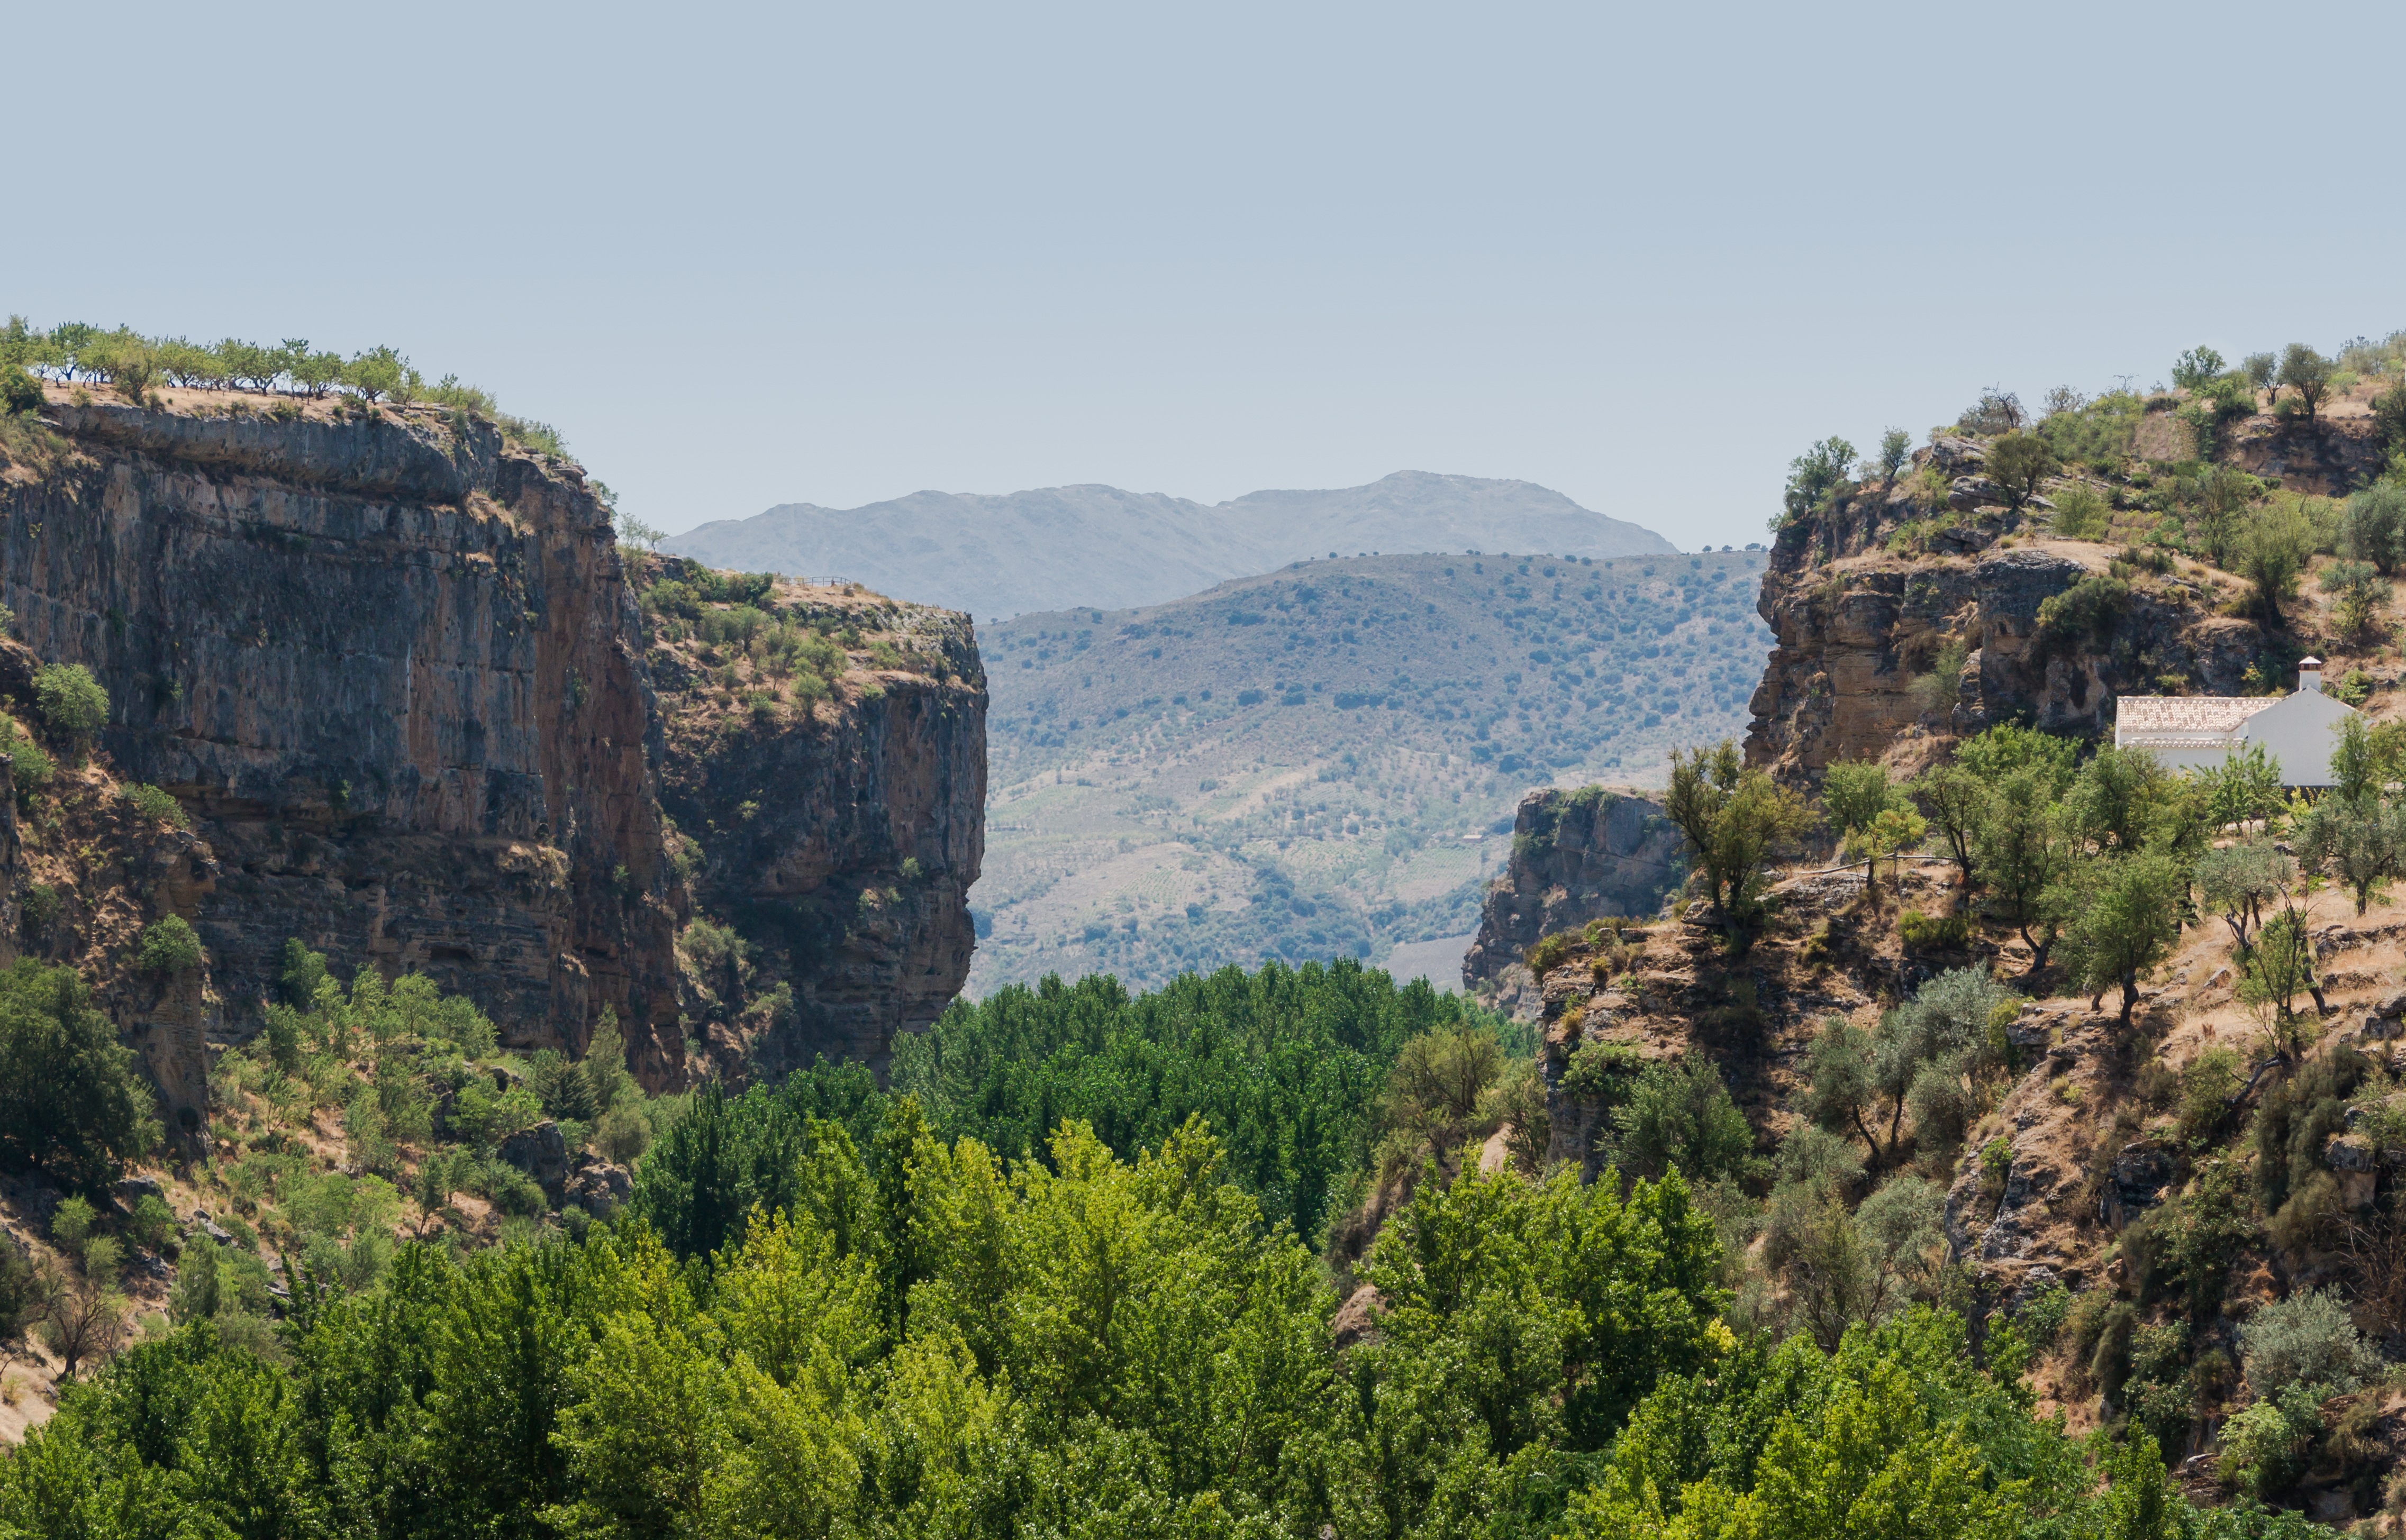 Canyon of Rio Alhama, Alhama de Granada, Andalusia, Spain